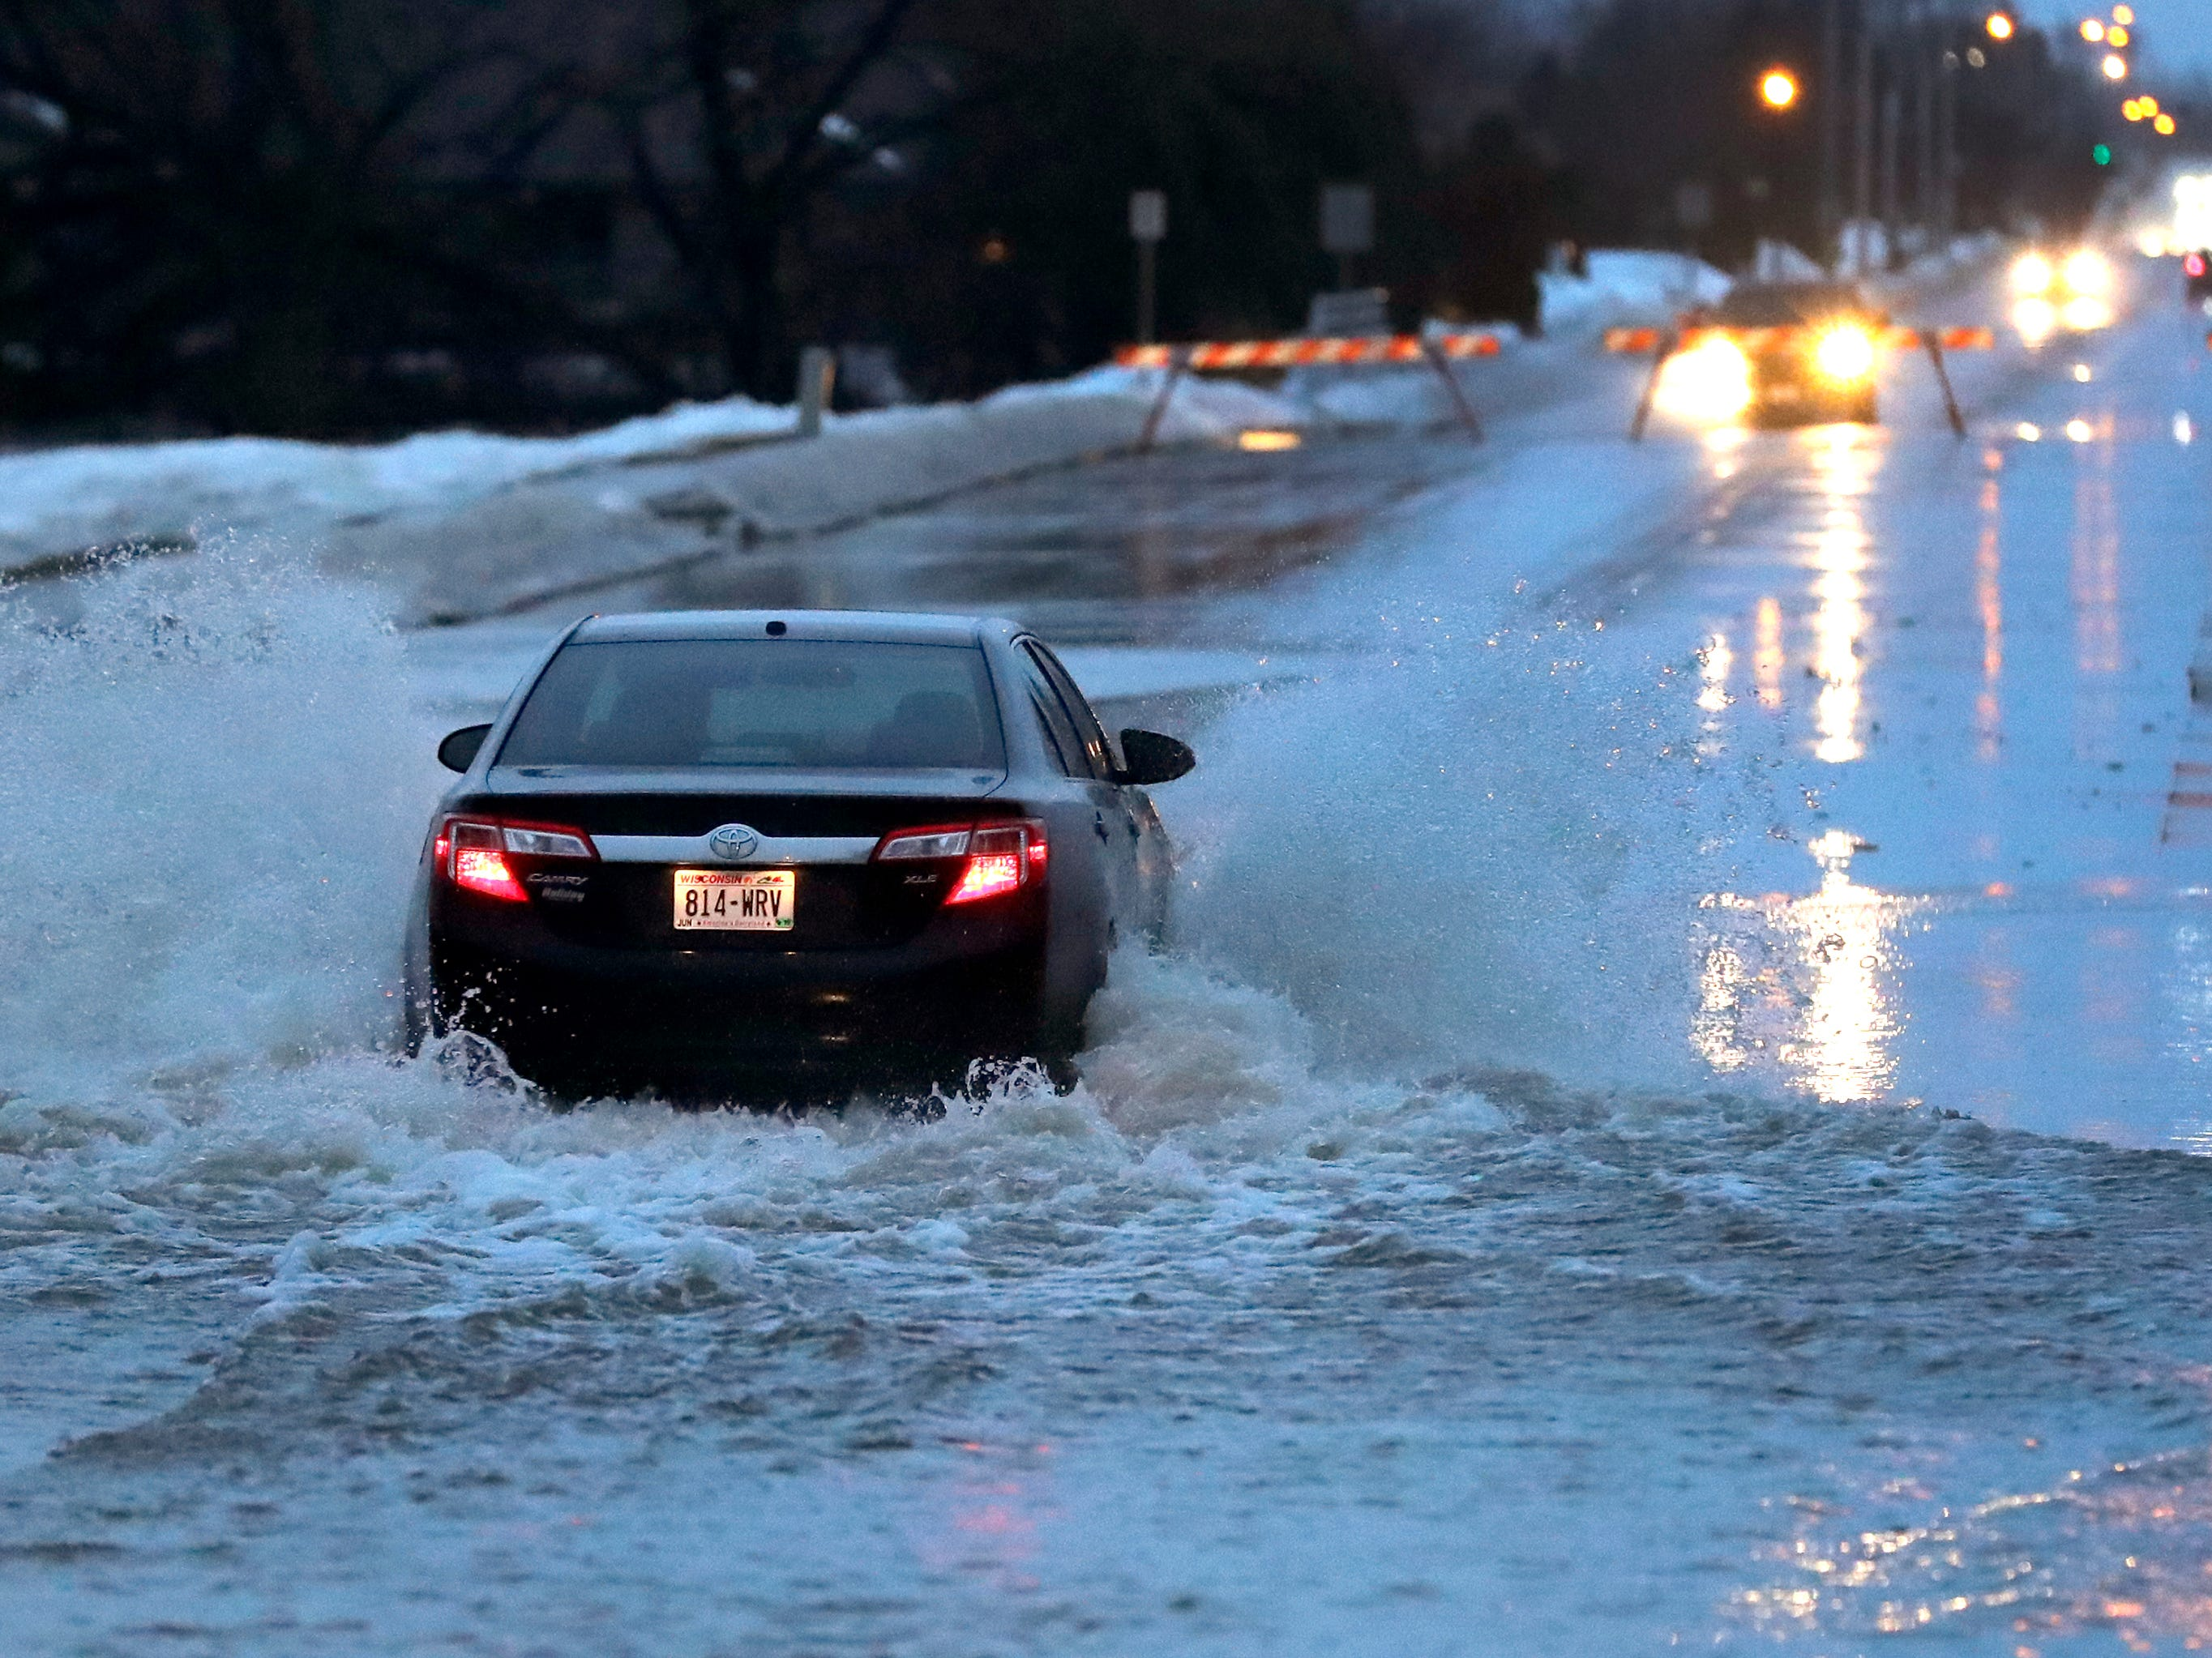 A motorist ignores barricades to travel along a flooded S. Oakwood Road Thursday, March 14, 2019, in Oshkosh, Wis. Dan Powers/USA TODAY NETWORK-Wisconsin